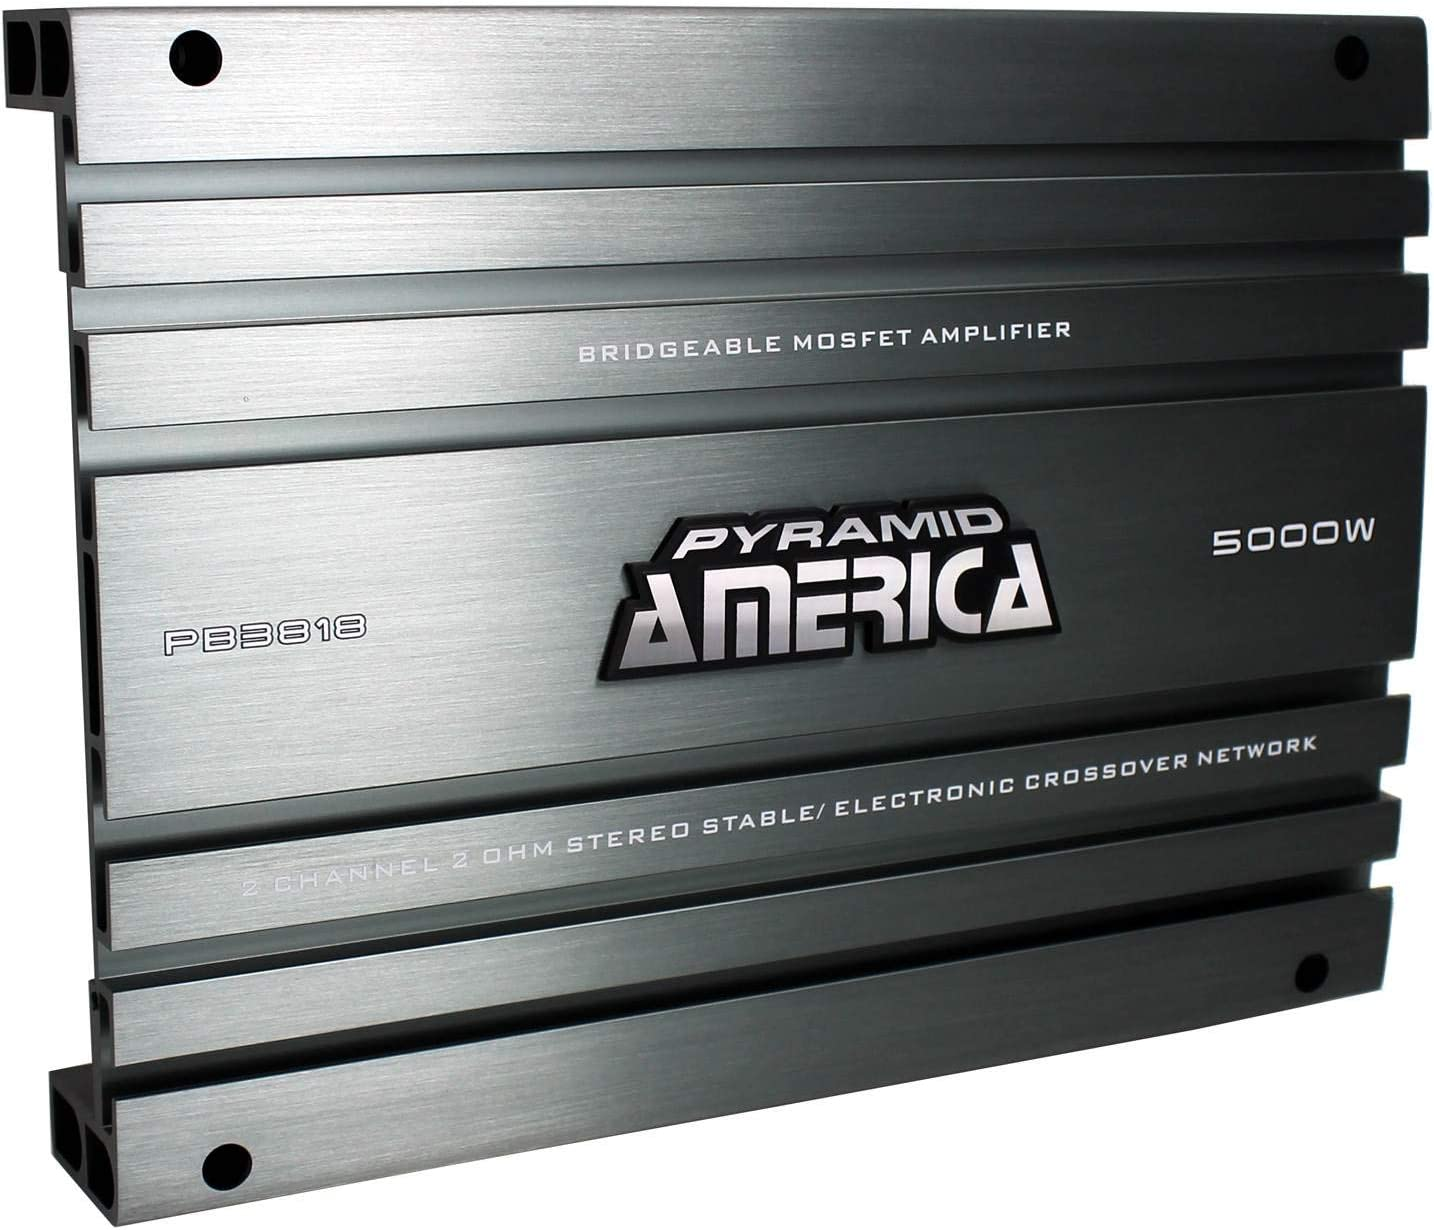 2 Channel Car Stereo Amplifier - 5000W High Power 2-Channel Bridgeable Audio Sound Auto Small Speaker Amp Box w/ MOSFET, Crossover, Bass Boost Control, Silver Plated RCA Input Output - Pyramid PB3818